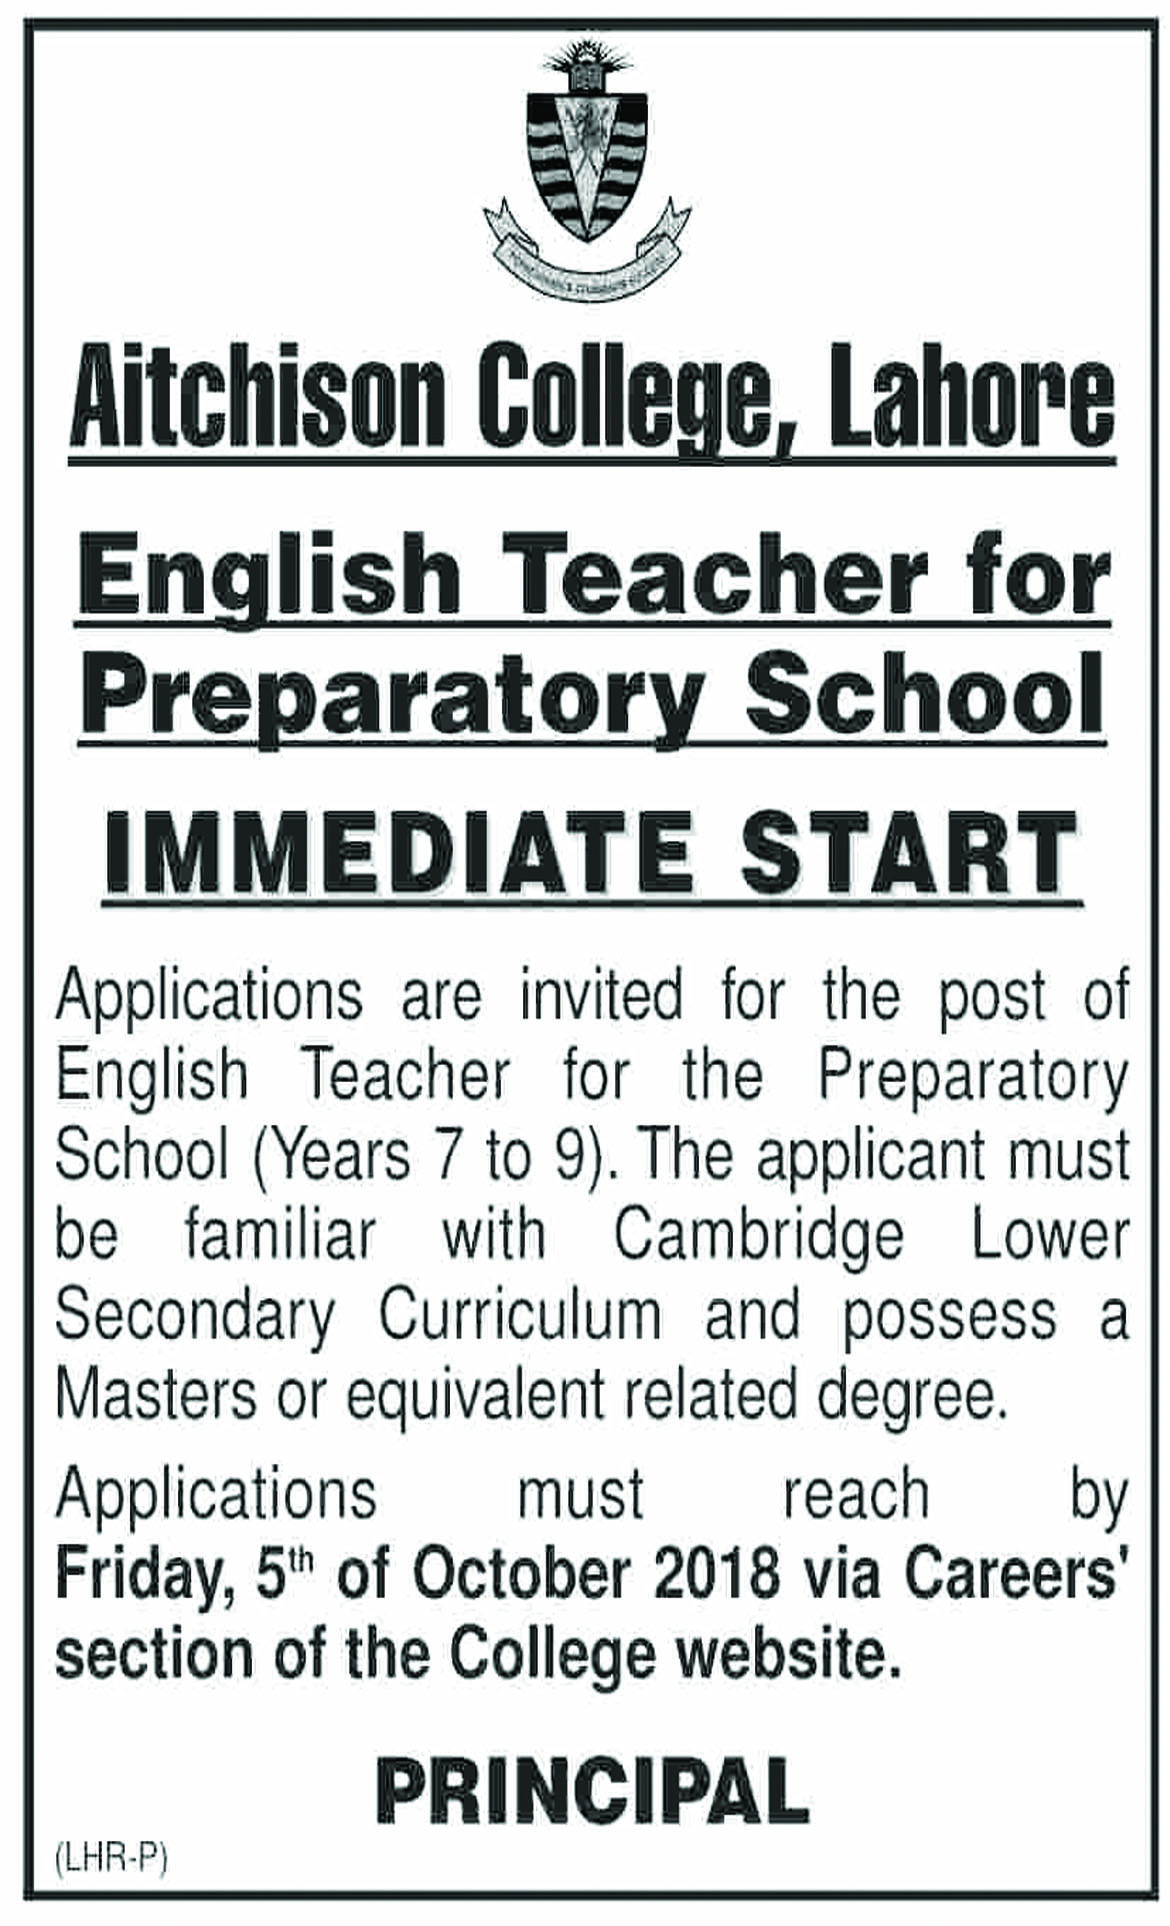 Jobs In Aitchison College Lahore 27 Sep 2018